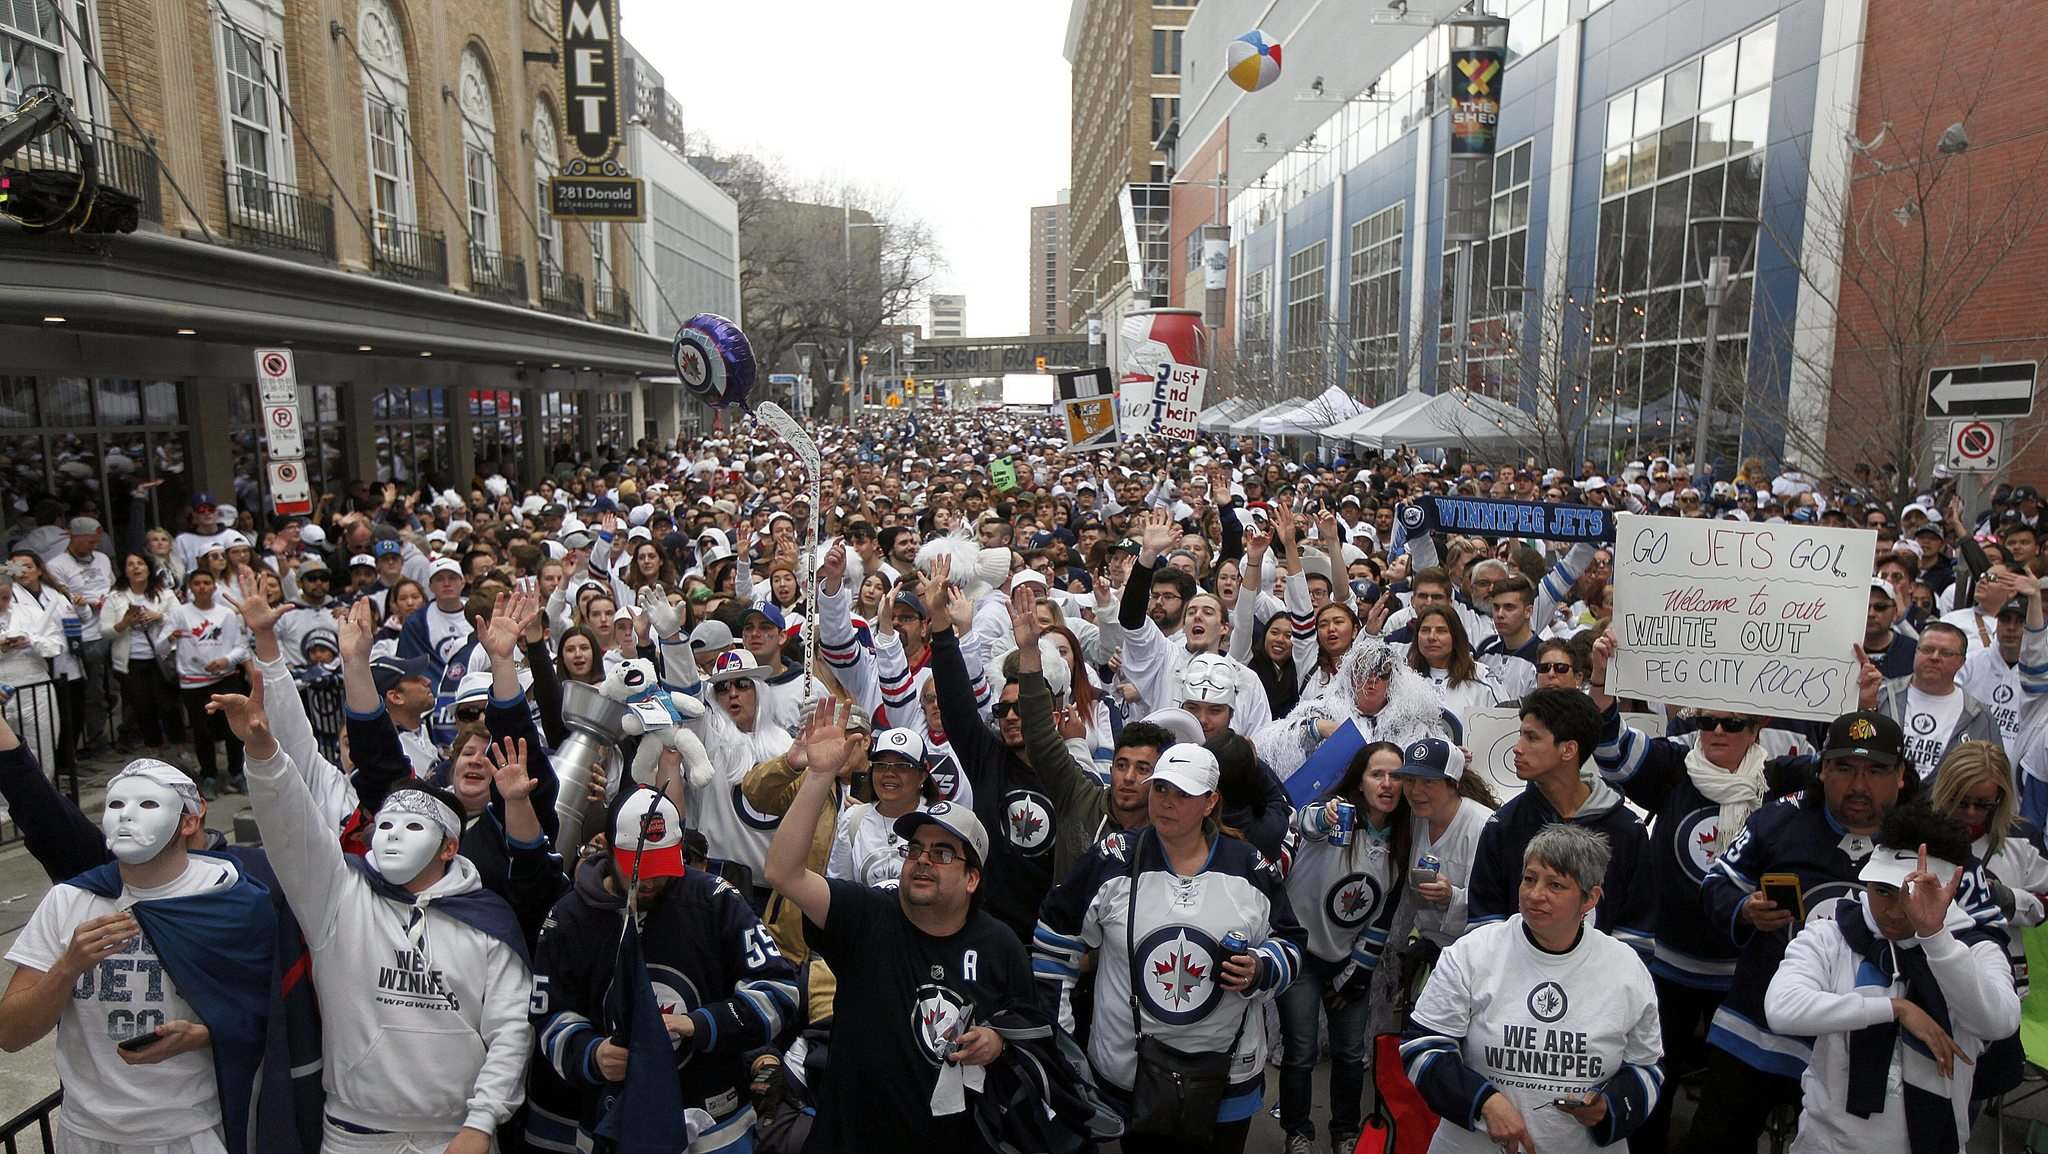 Picture from 'Winnipeg Free Press'